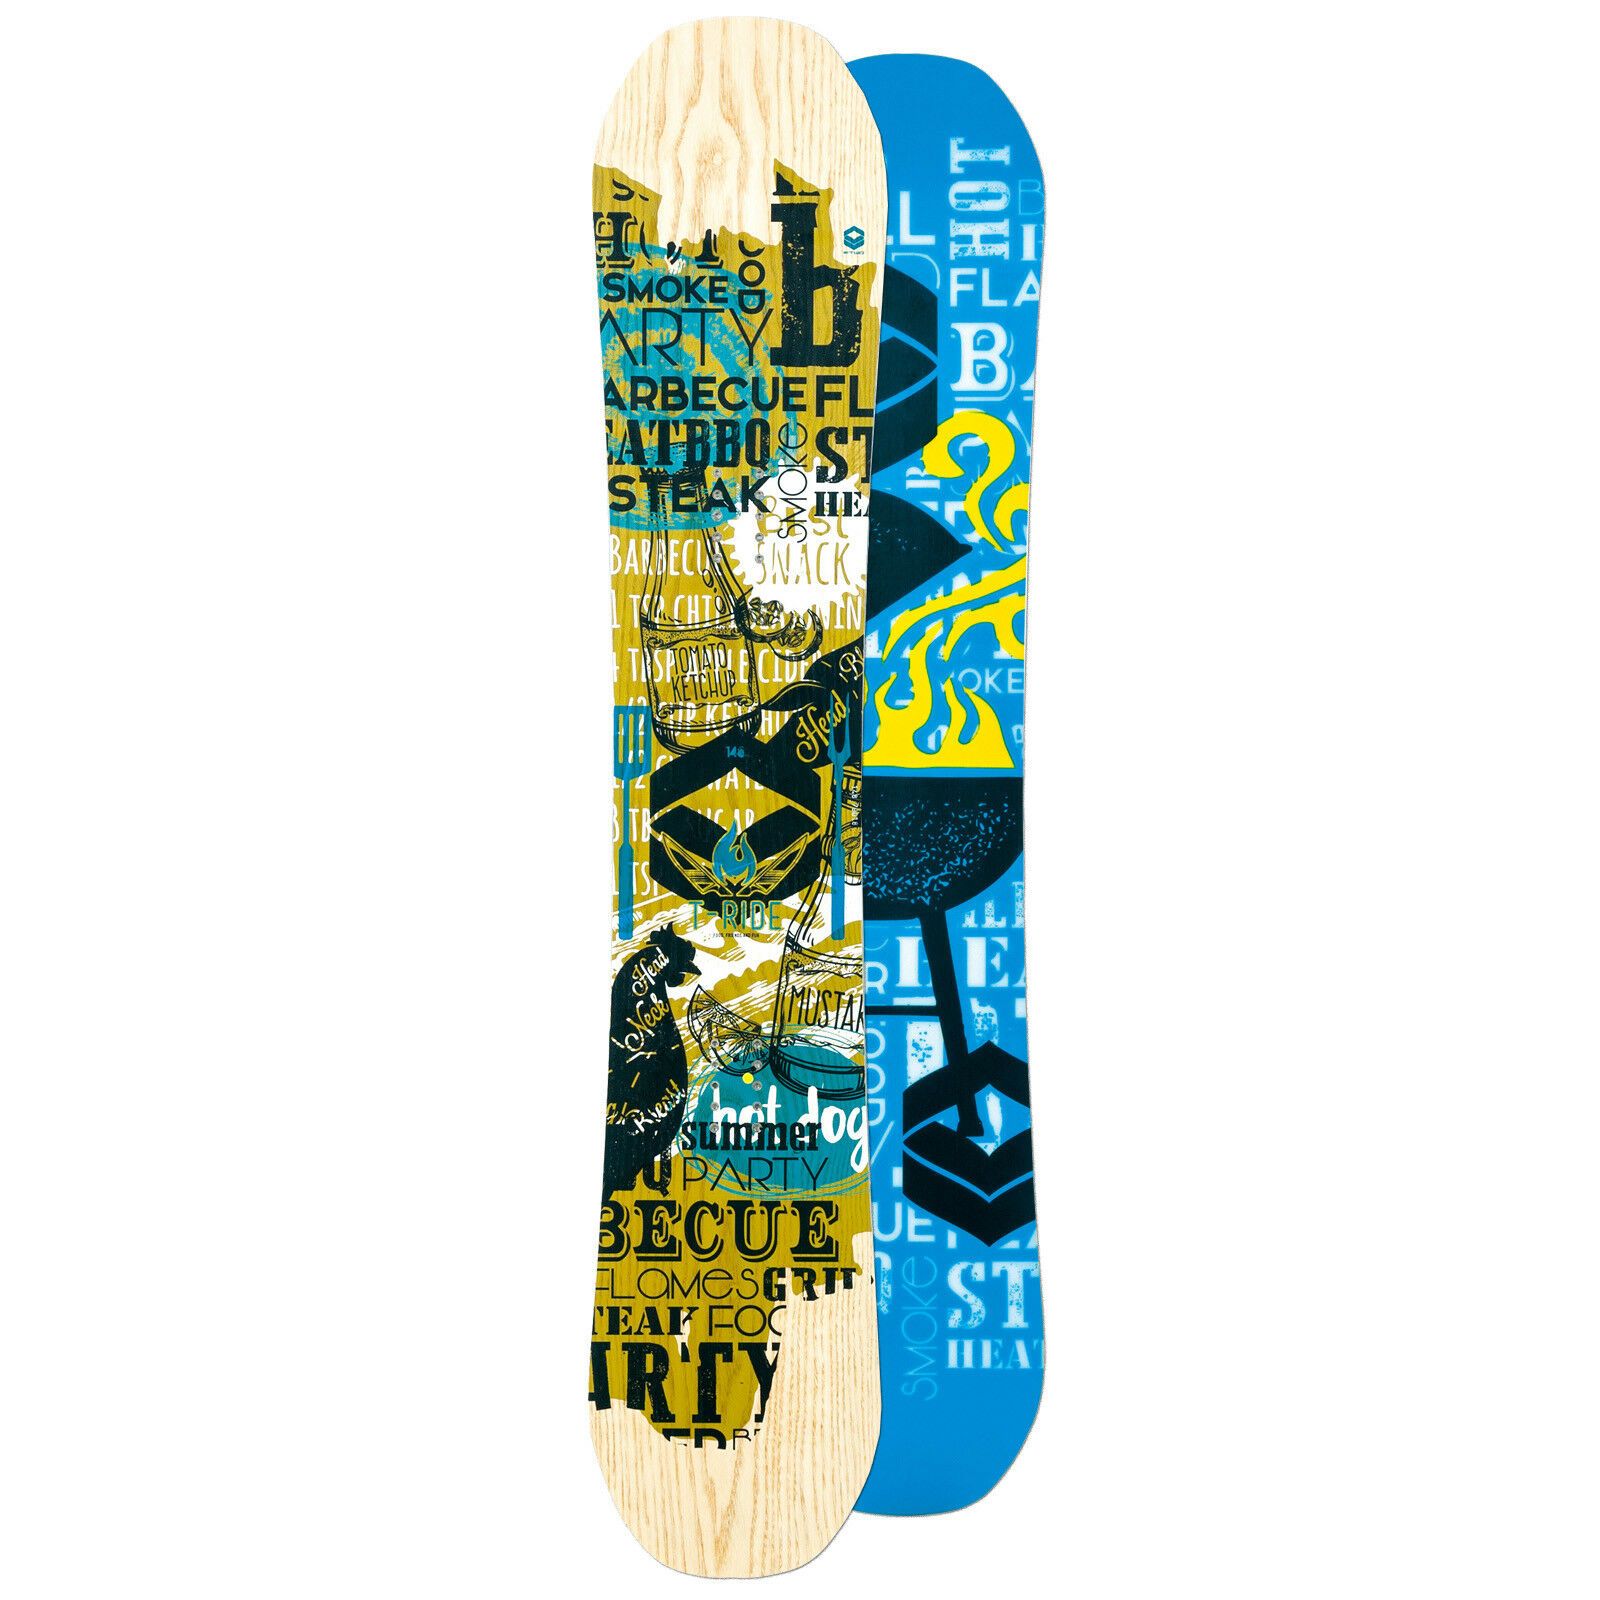 HERREN FREESTYLE CAMBER SNOWBOARD FTWO T-RIDE  162 CM WIDE